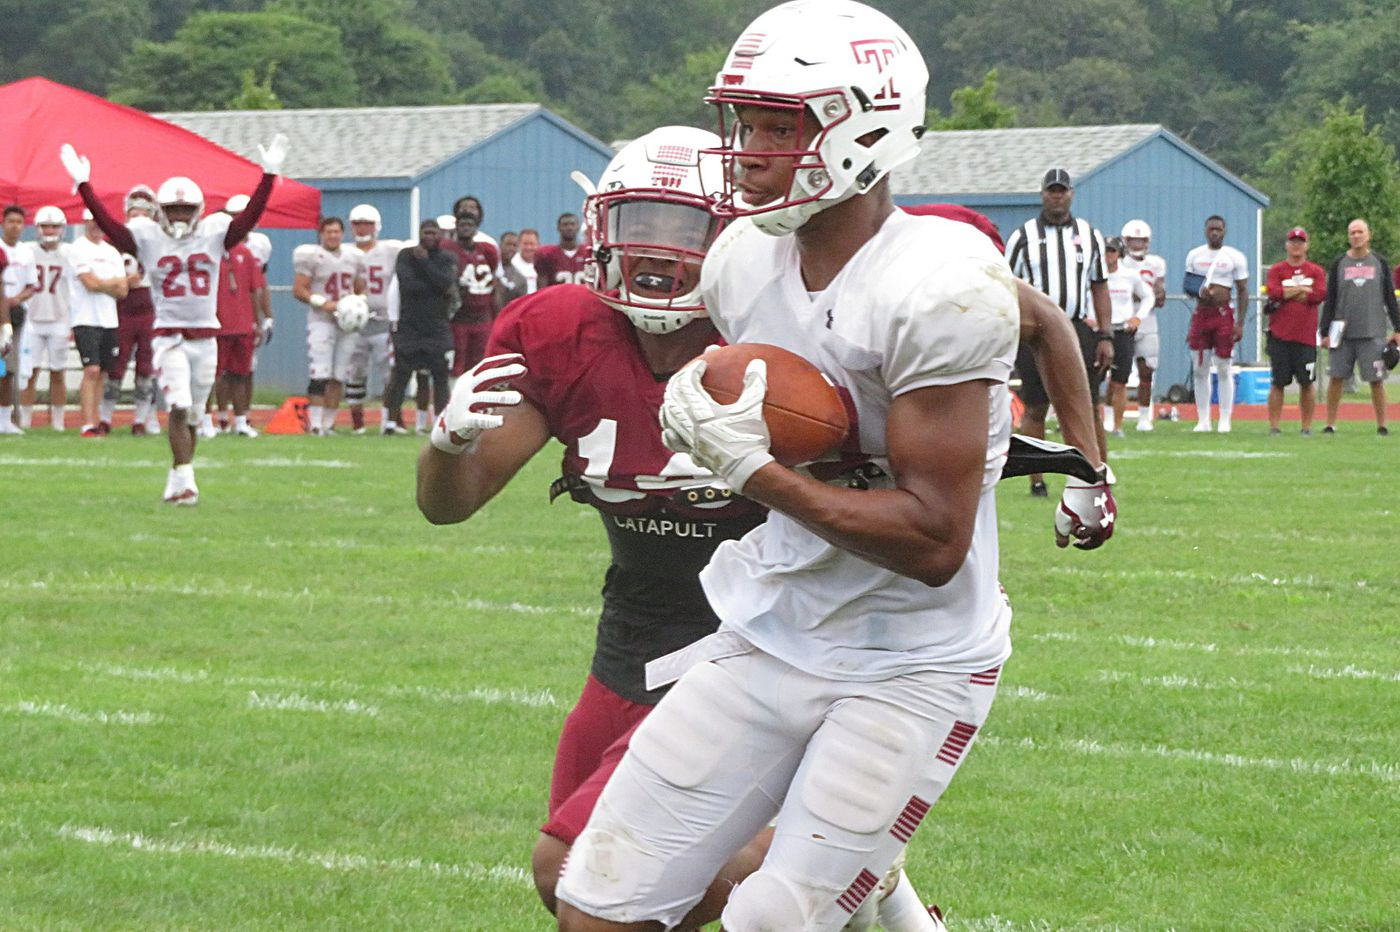 Receiver Branden Mack continues to step up performance at Temple training camp